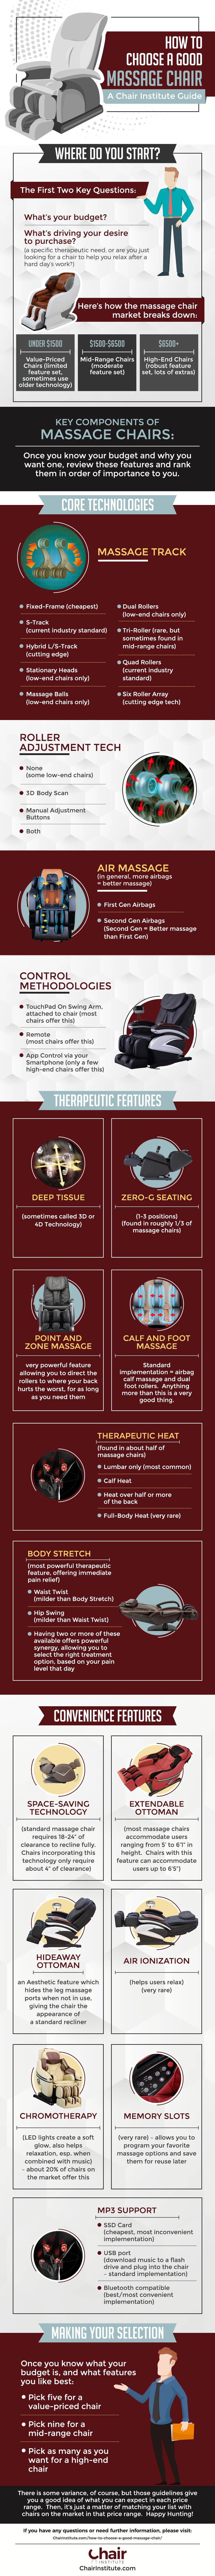 Infographic of How to Choose a Good Massage Chair Guide, by ChairInstitute.com